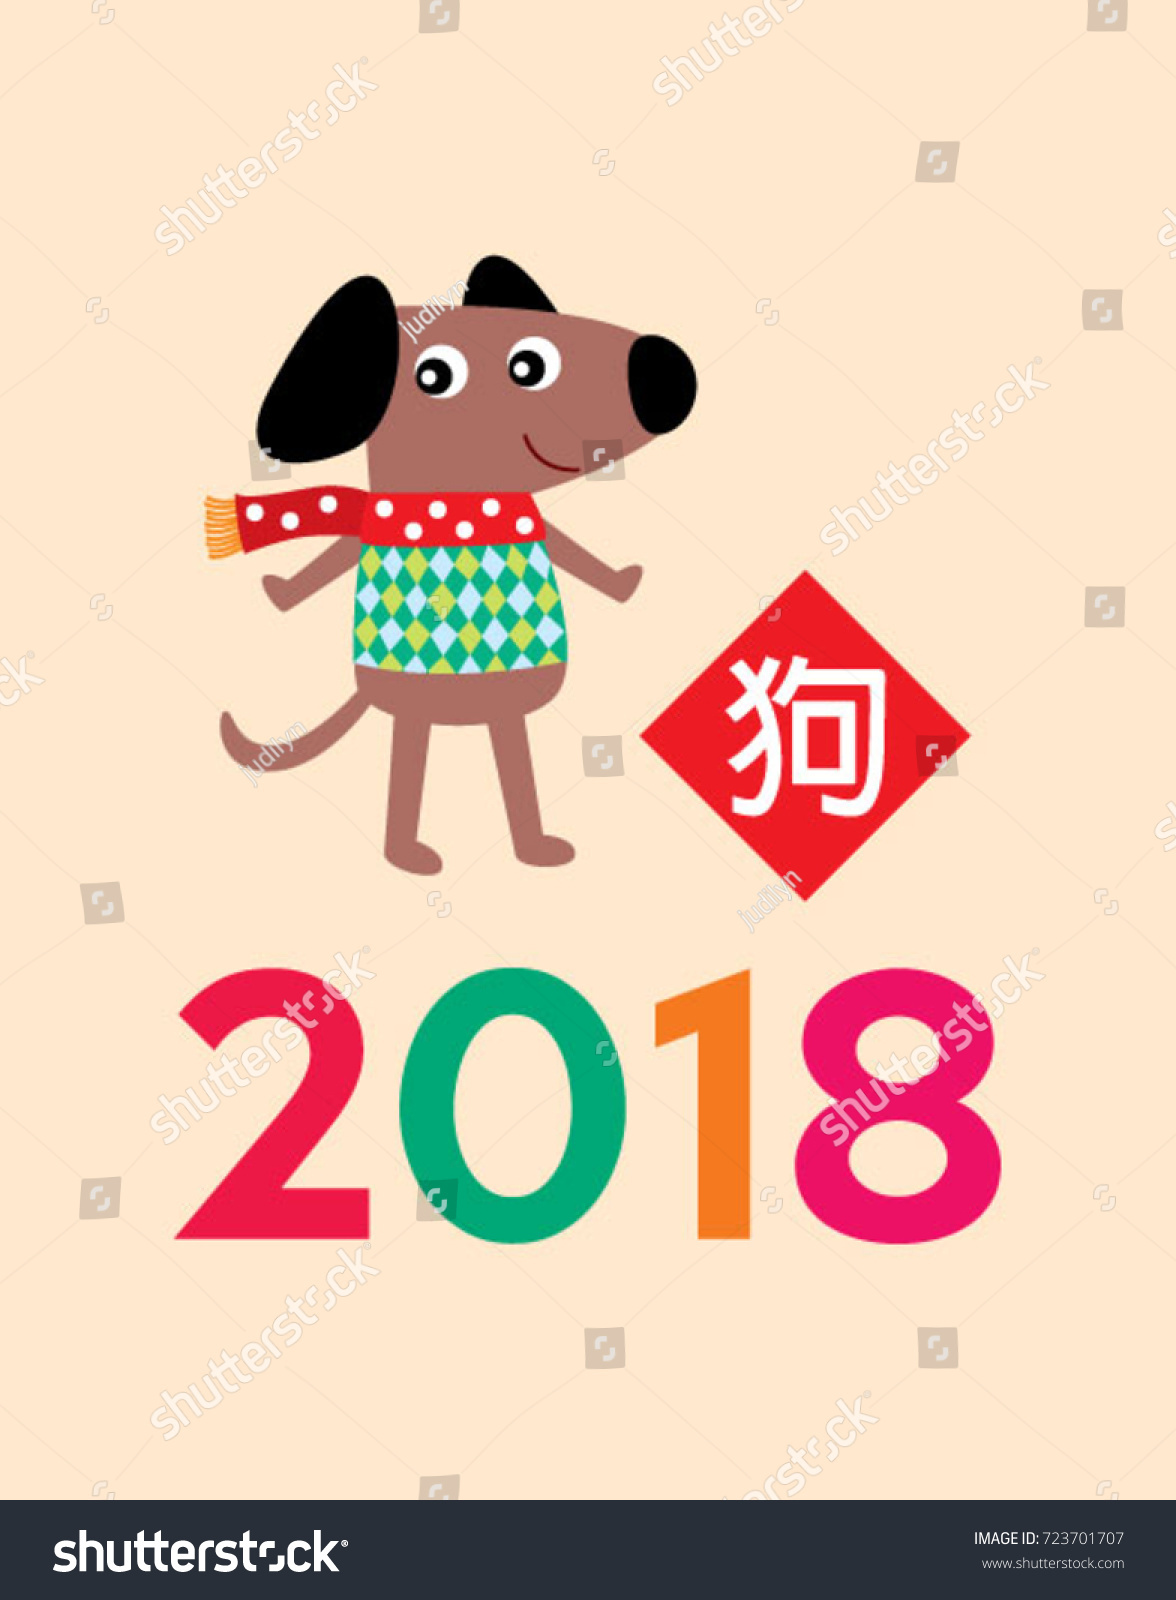 Cute Puppy 2018 New Year Greeting Stock Vector Royalty Free